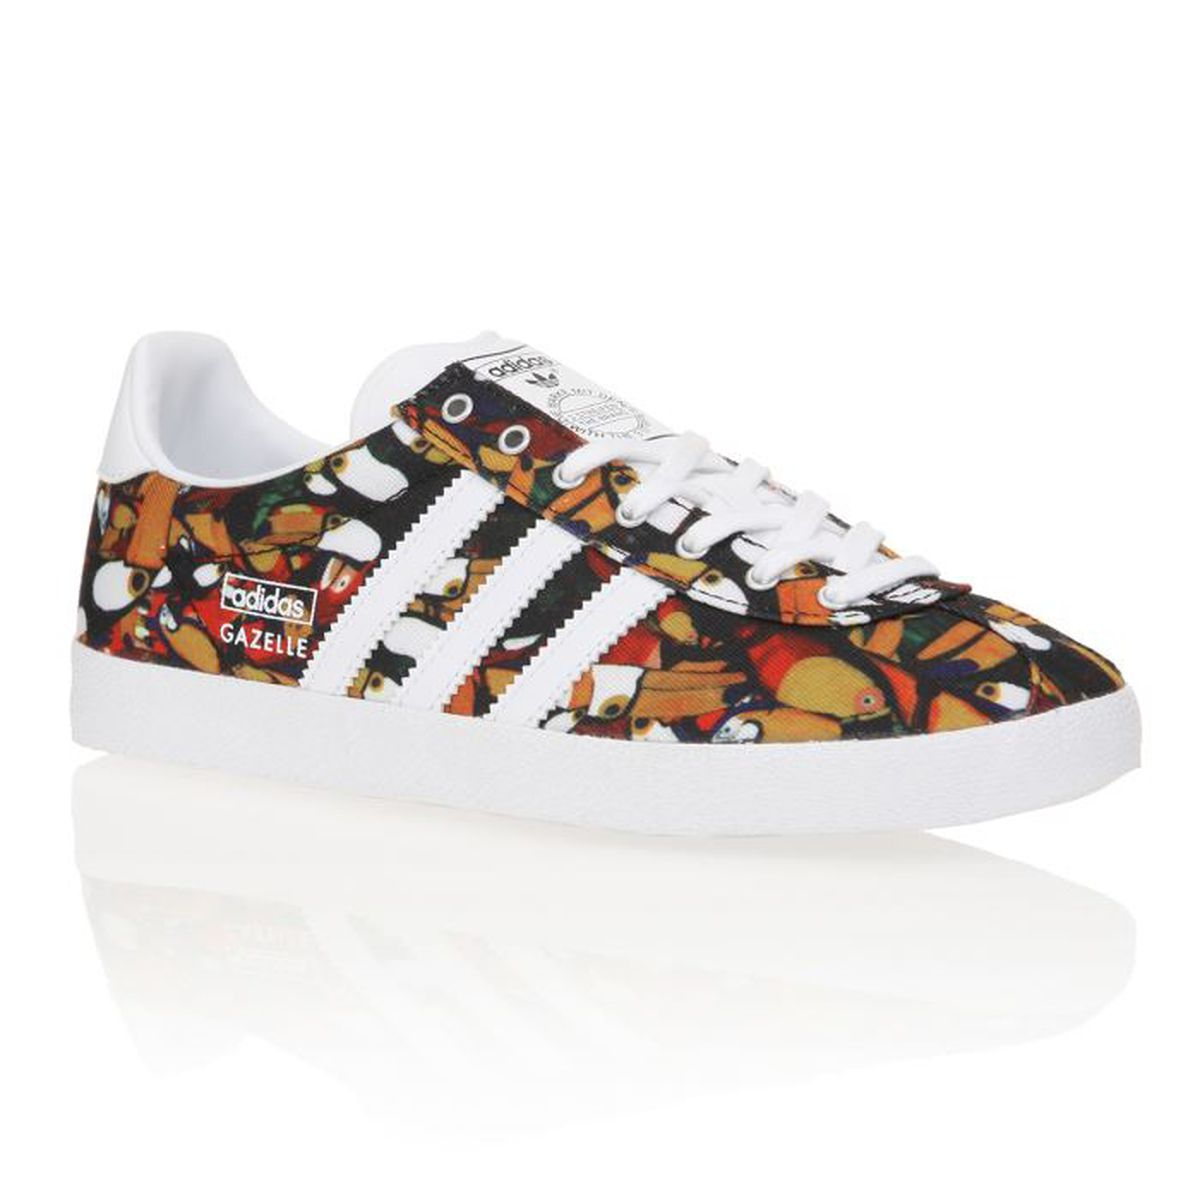 adidas gazelle og femme baskets mode multicolore